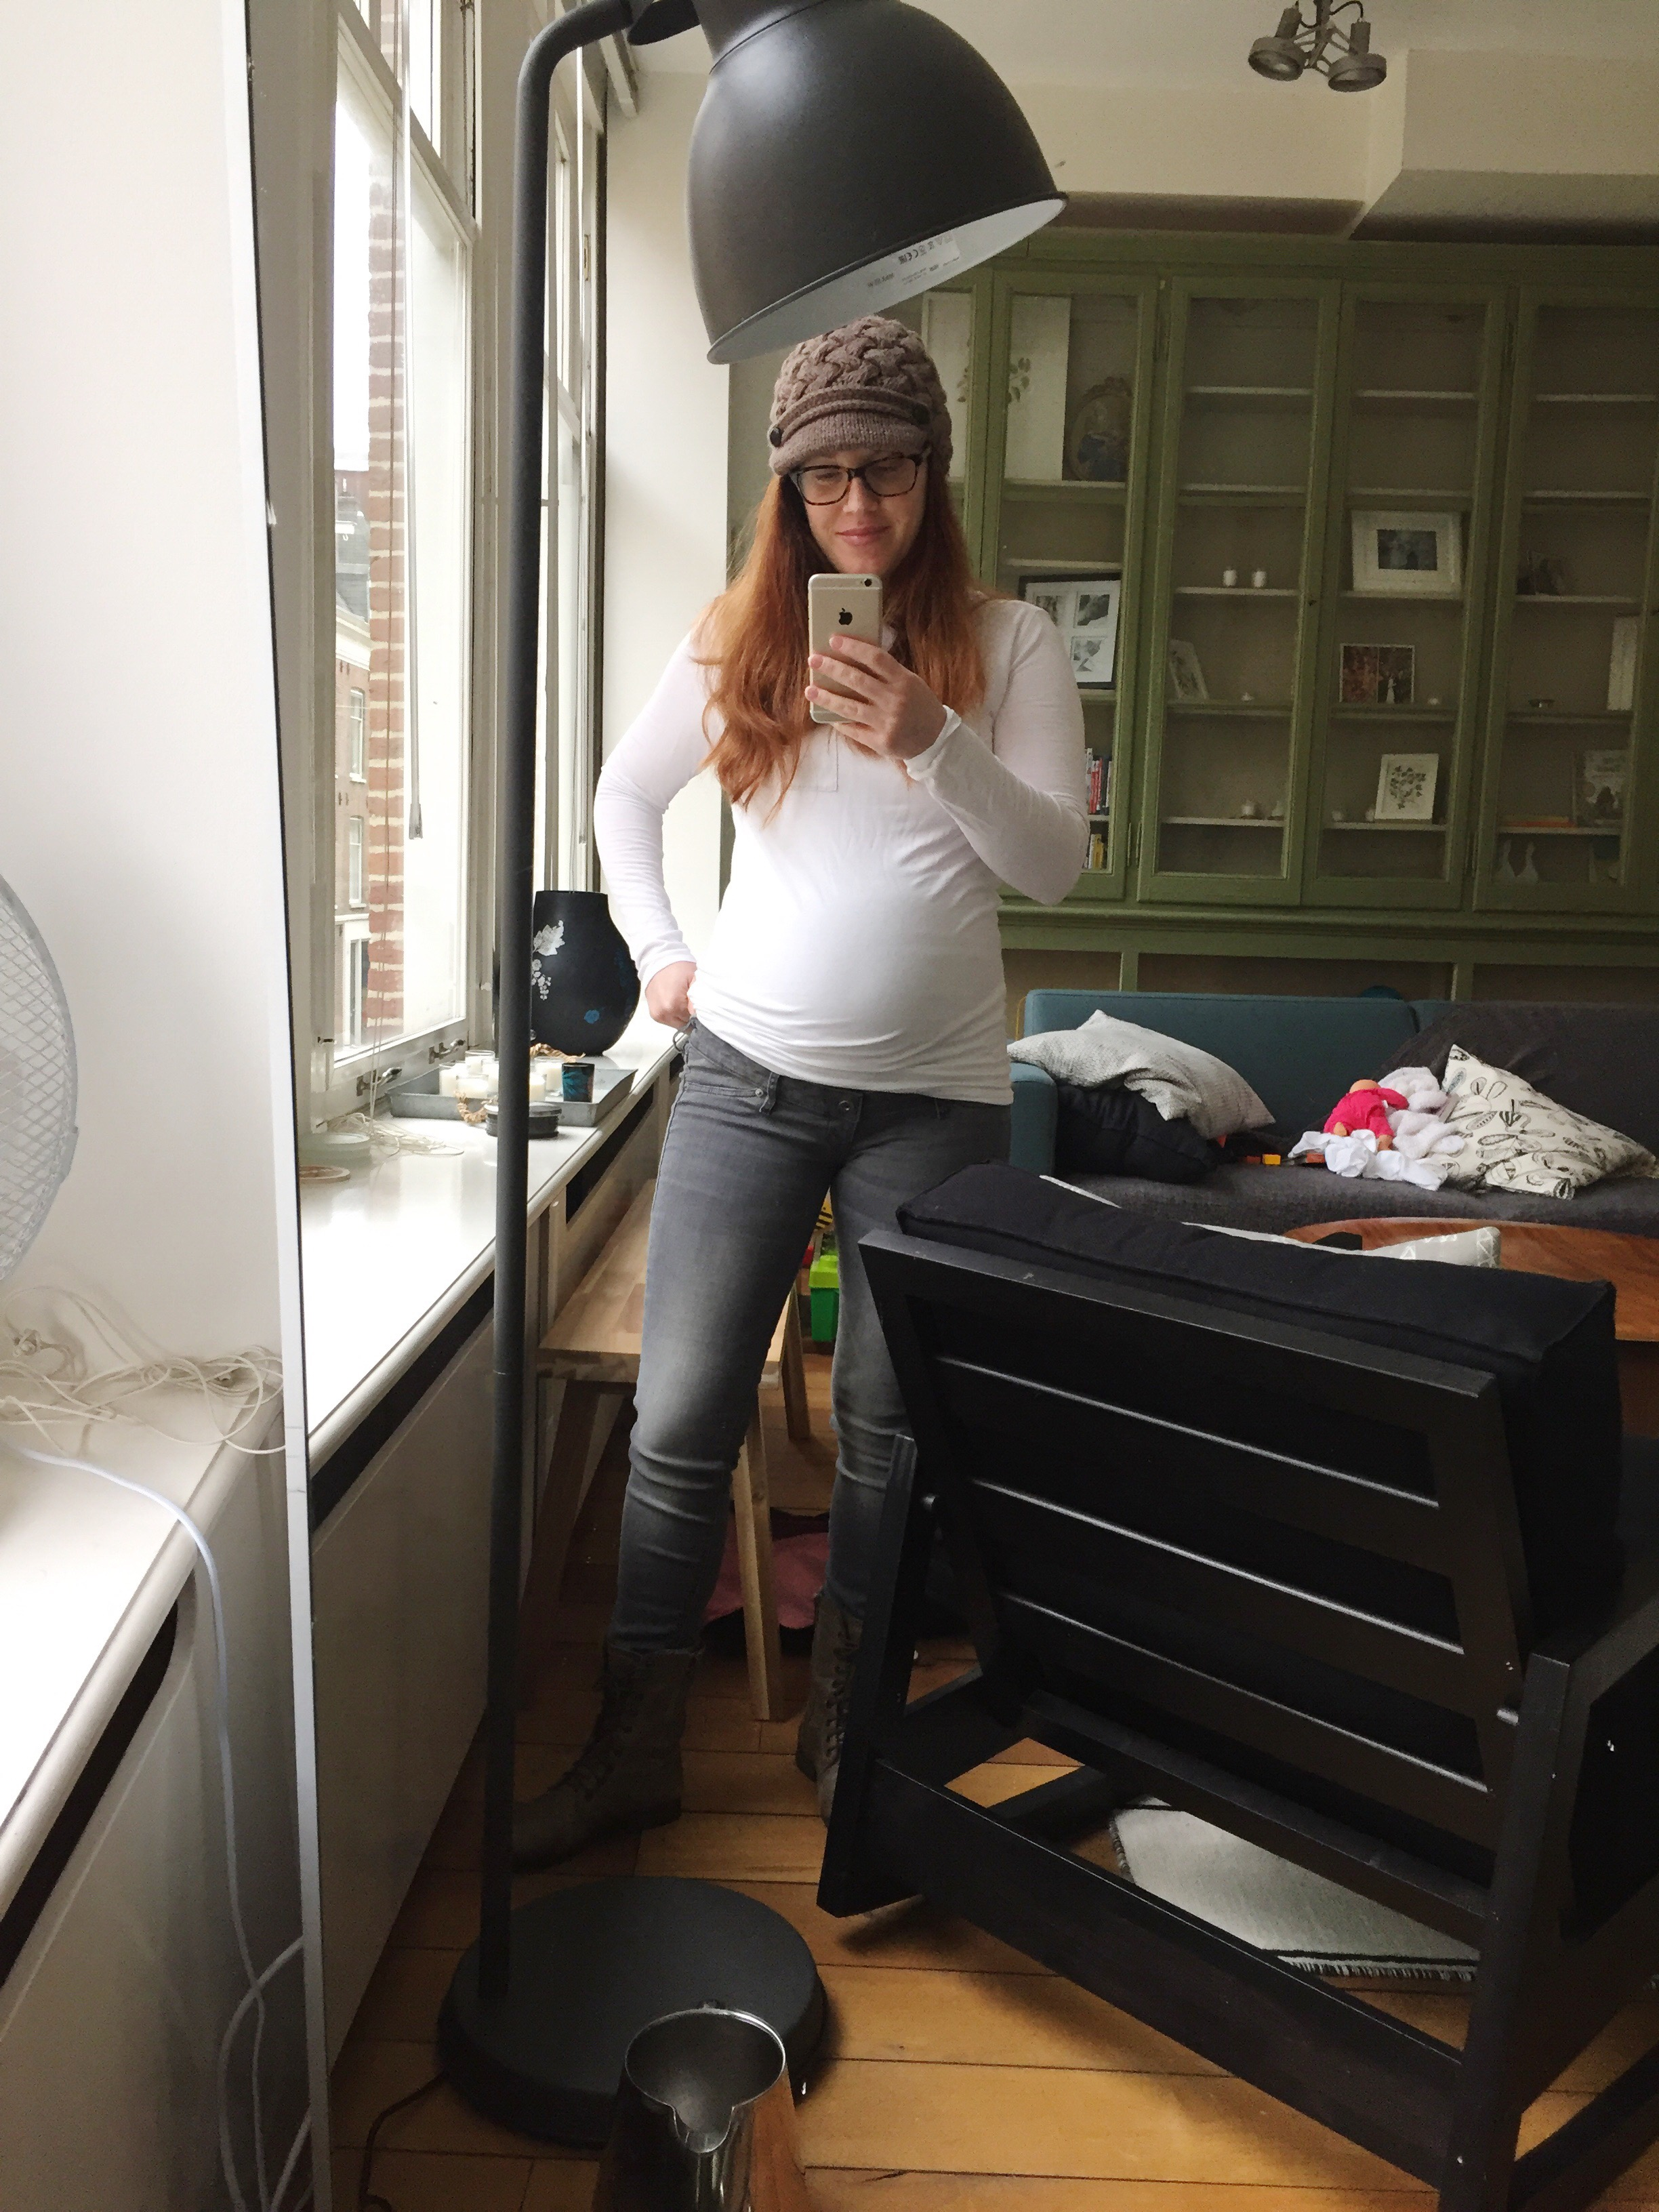 9b703ec10d3b3 As I mentioned last week, I have been searching for maternity jeans that  are both comfortable and don't fall down. While I love how comfortable my J  Brand ...